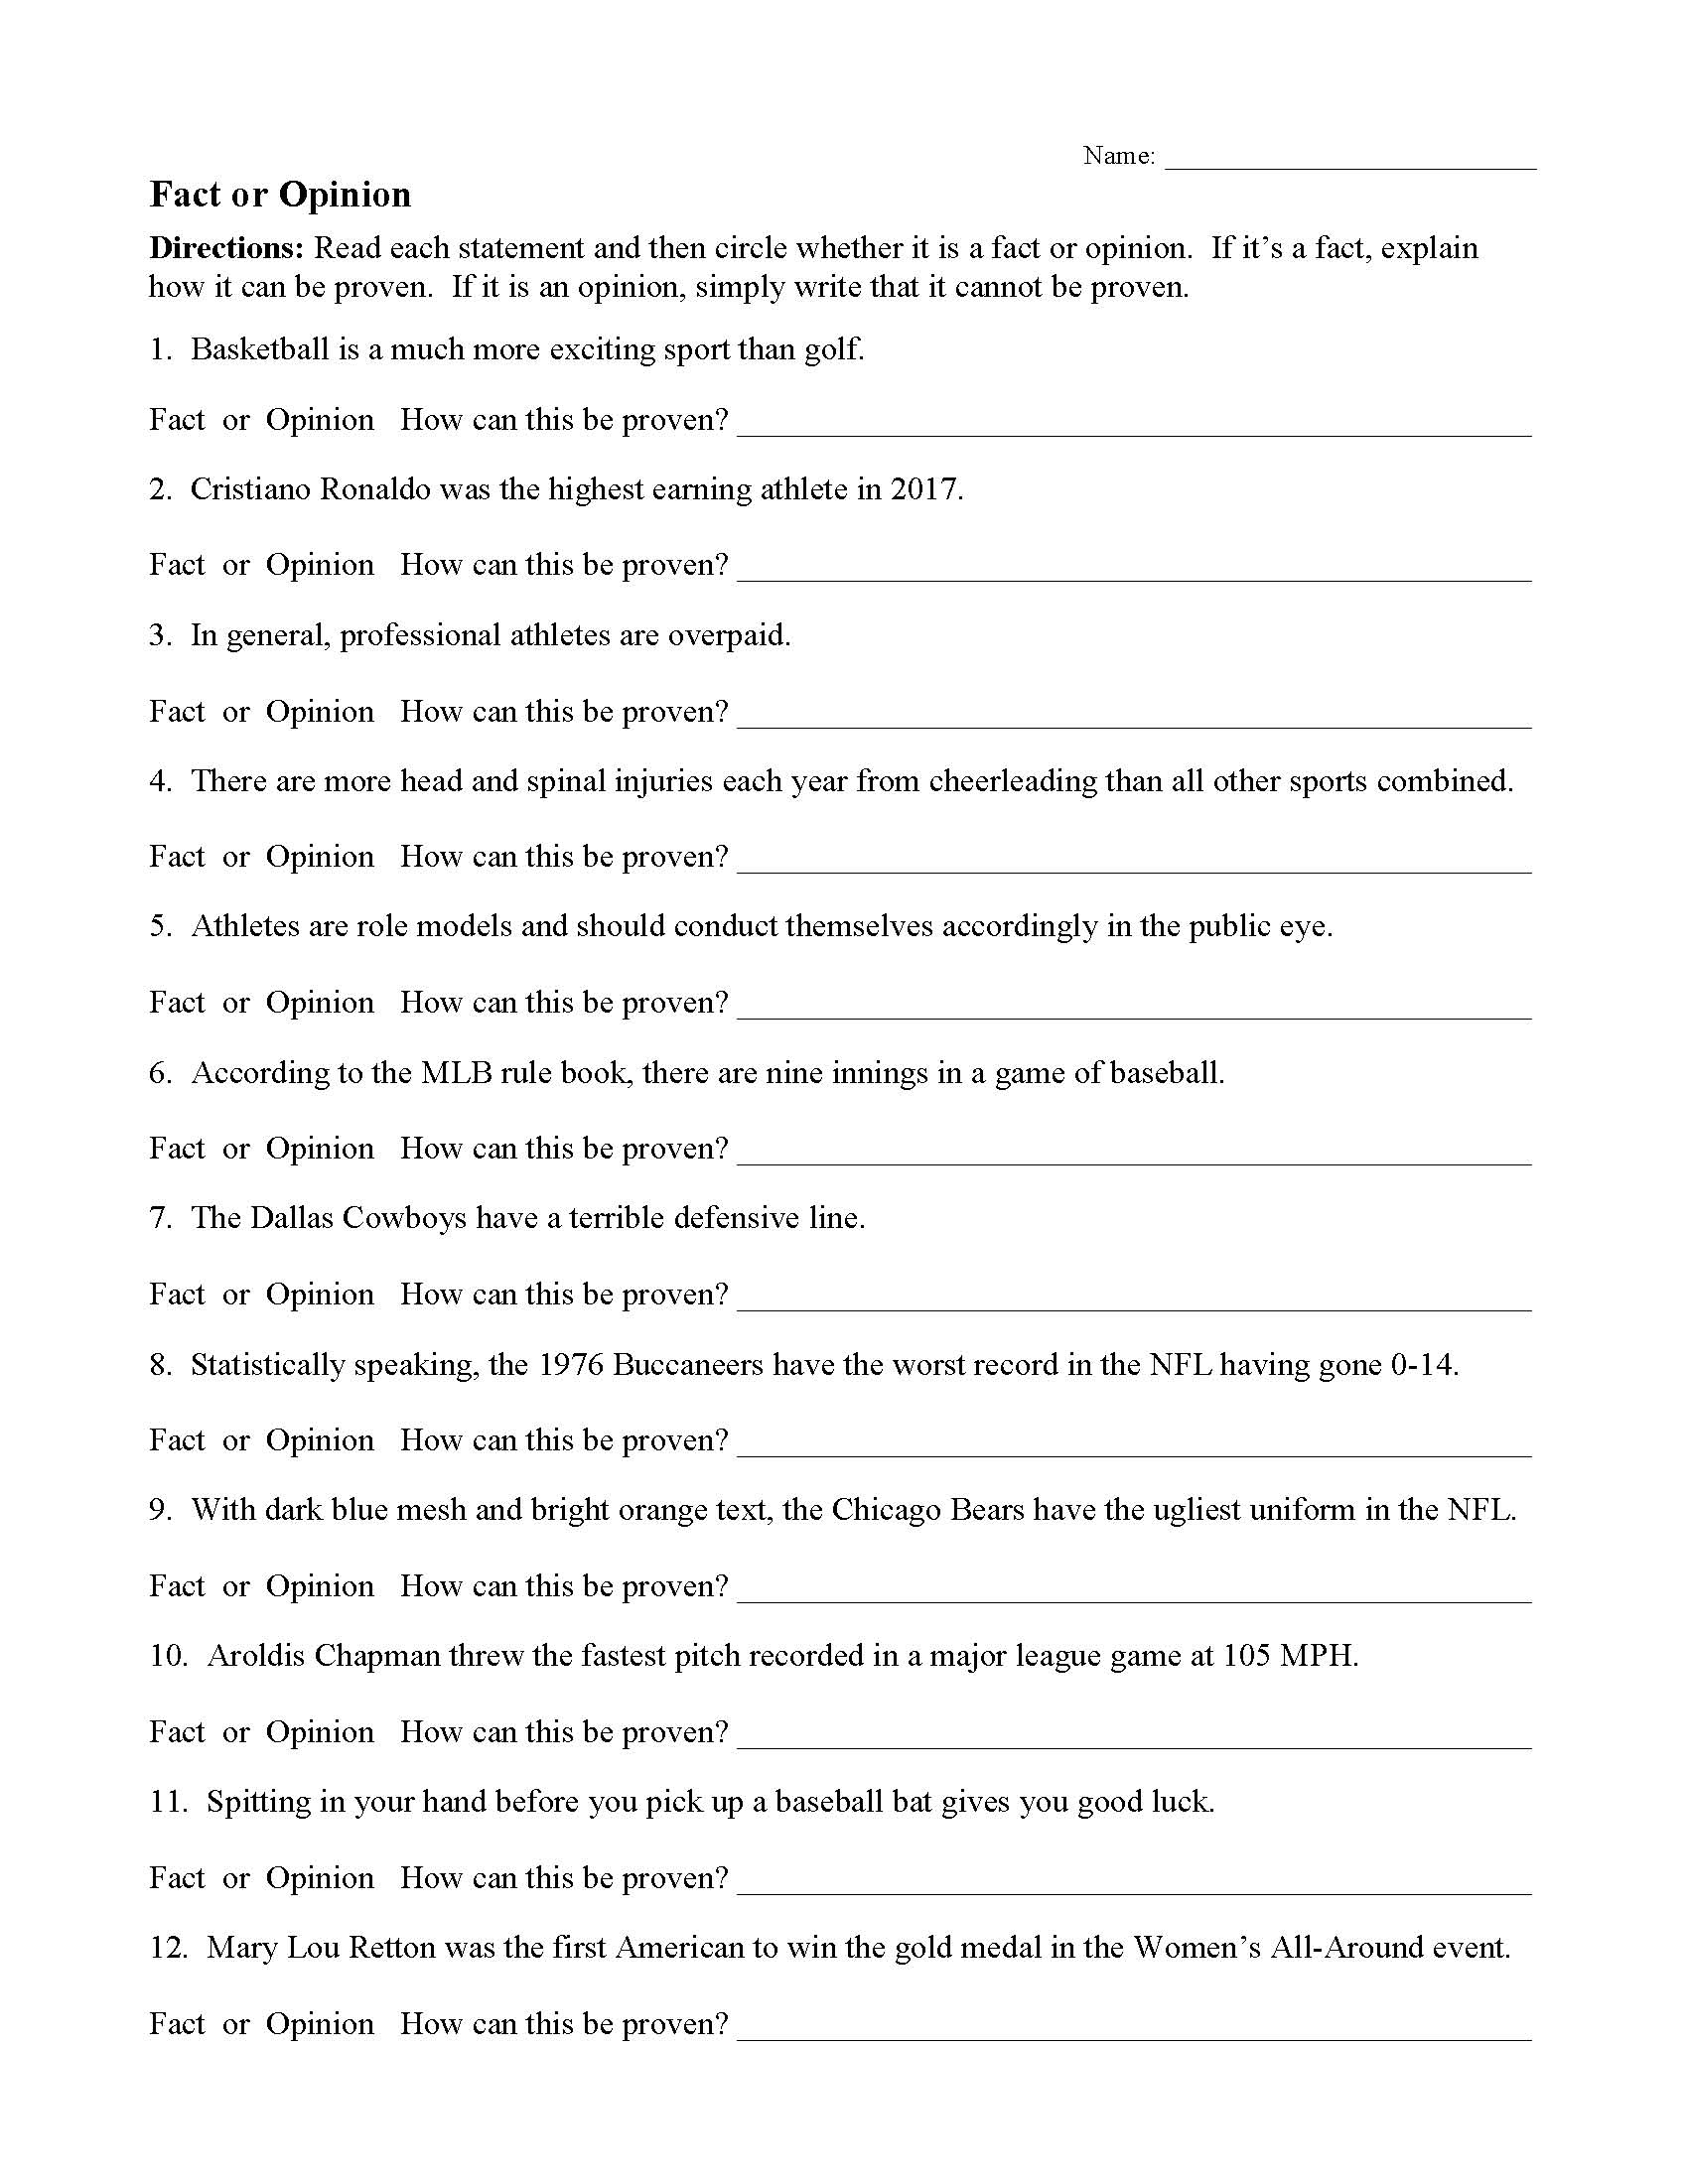 Fact And Opinion Worksheets | Ereading Worksheets